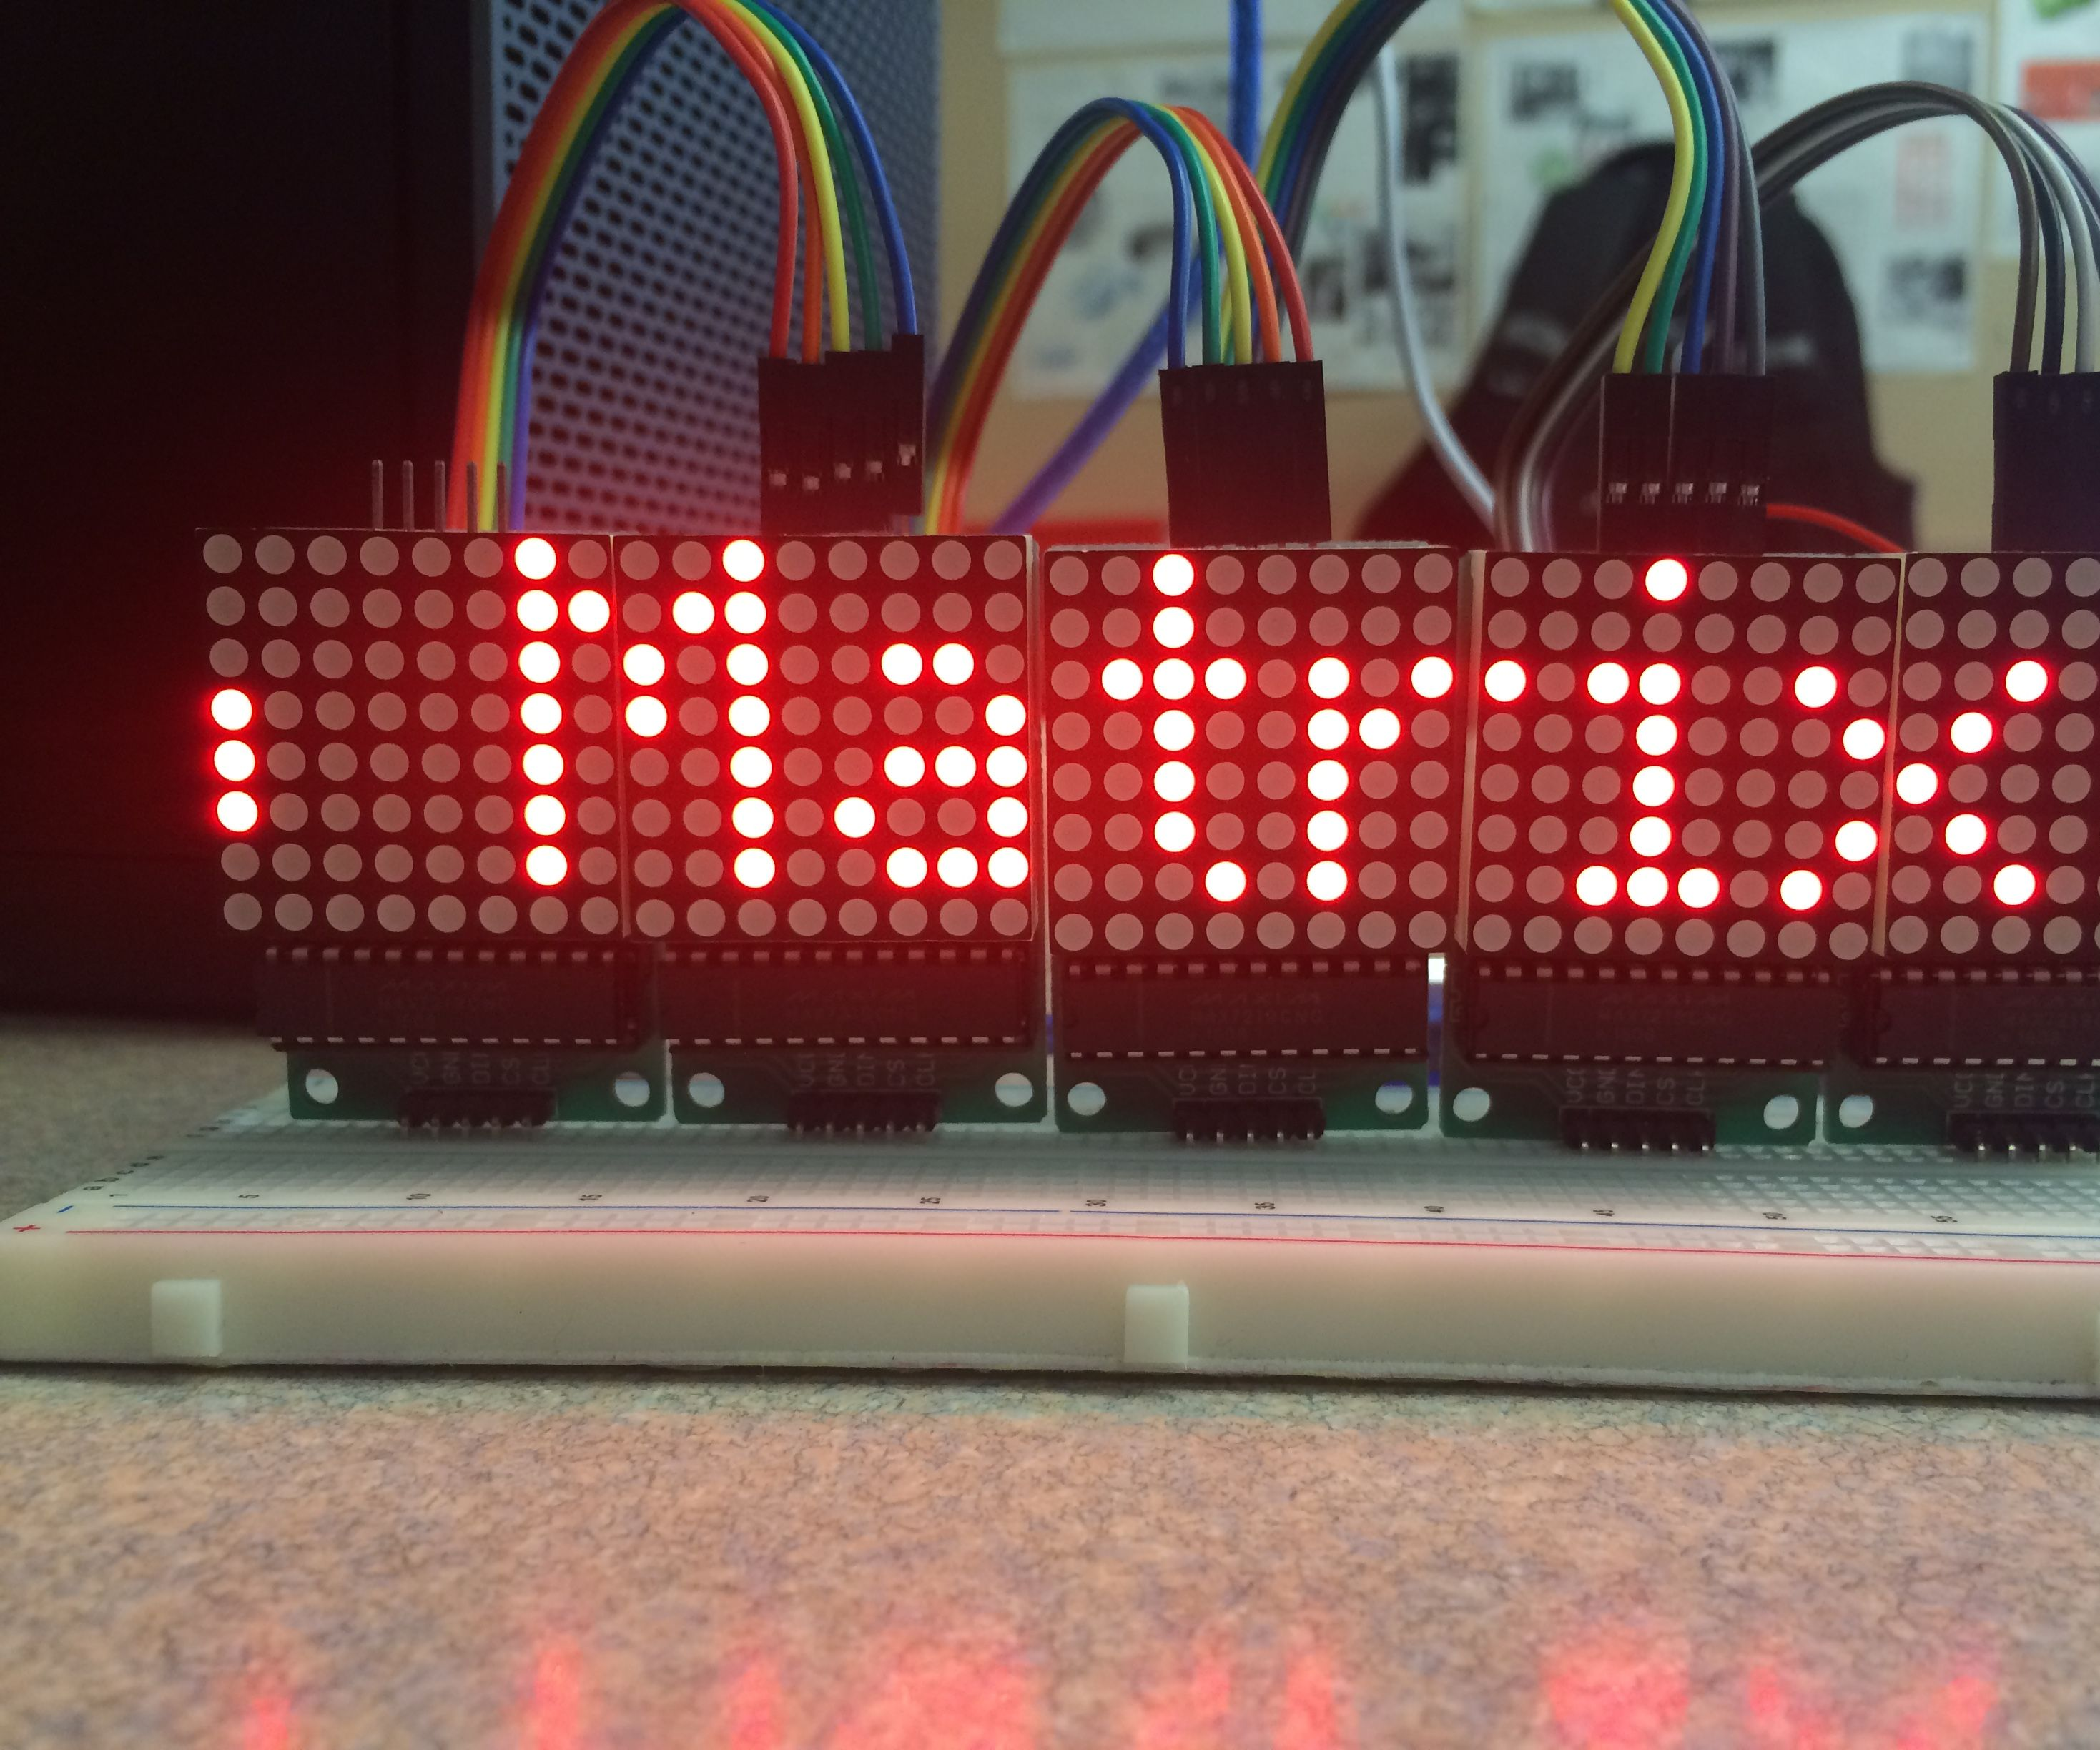 Scrolling text on a 8x8 LED matrix using an Arduino UNO